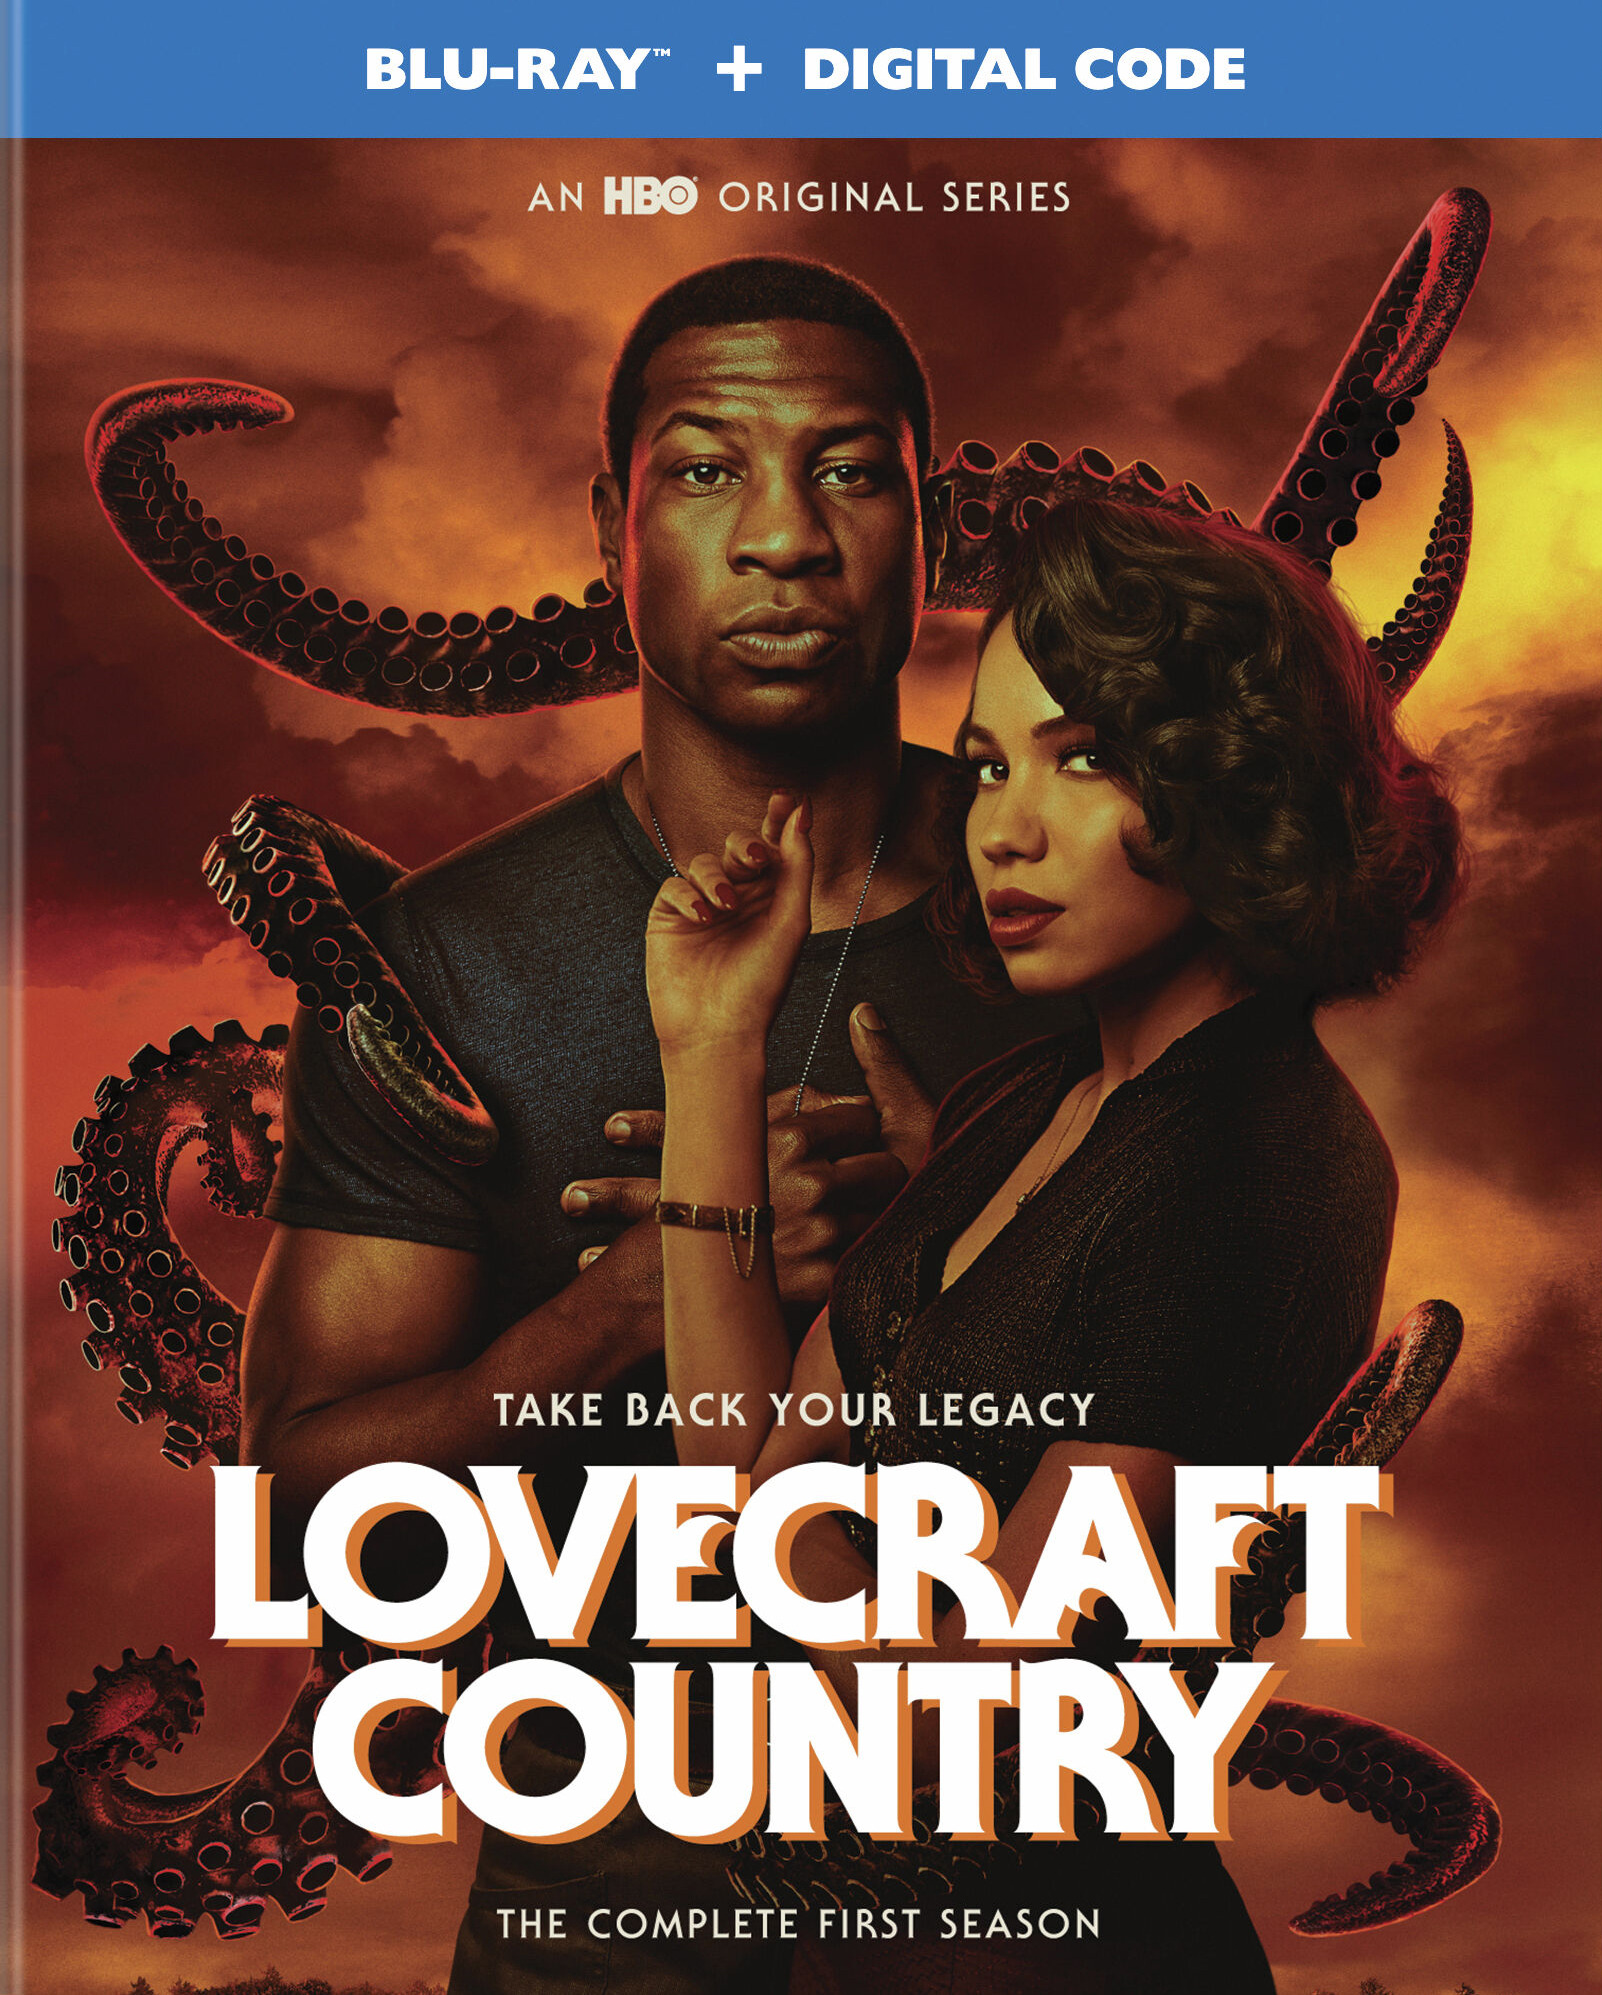 """The Complete First Season of HBO's """"Lovecraft Country"""" Comes to DVD and Blu-ray in February"""